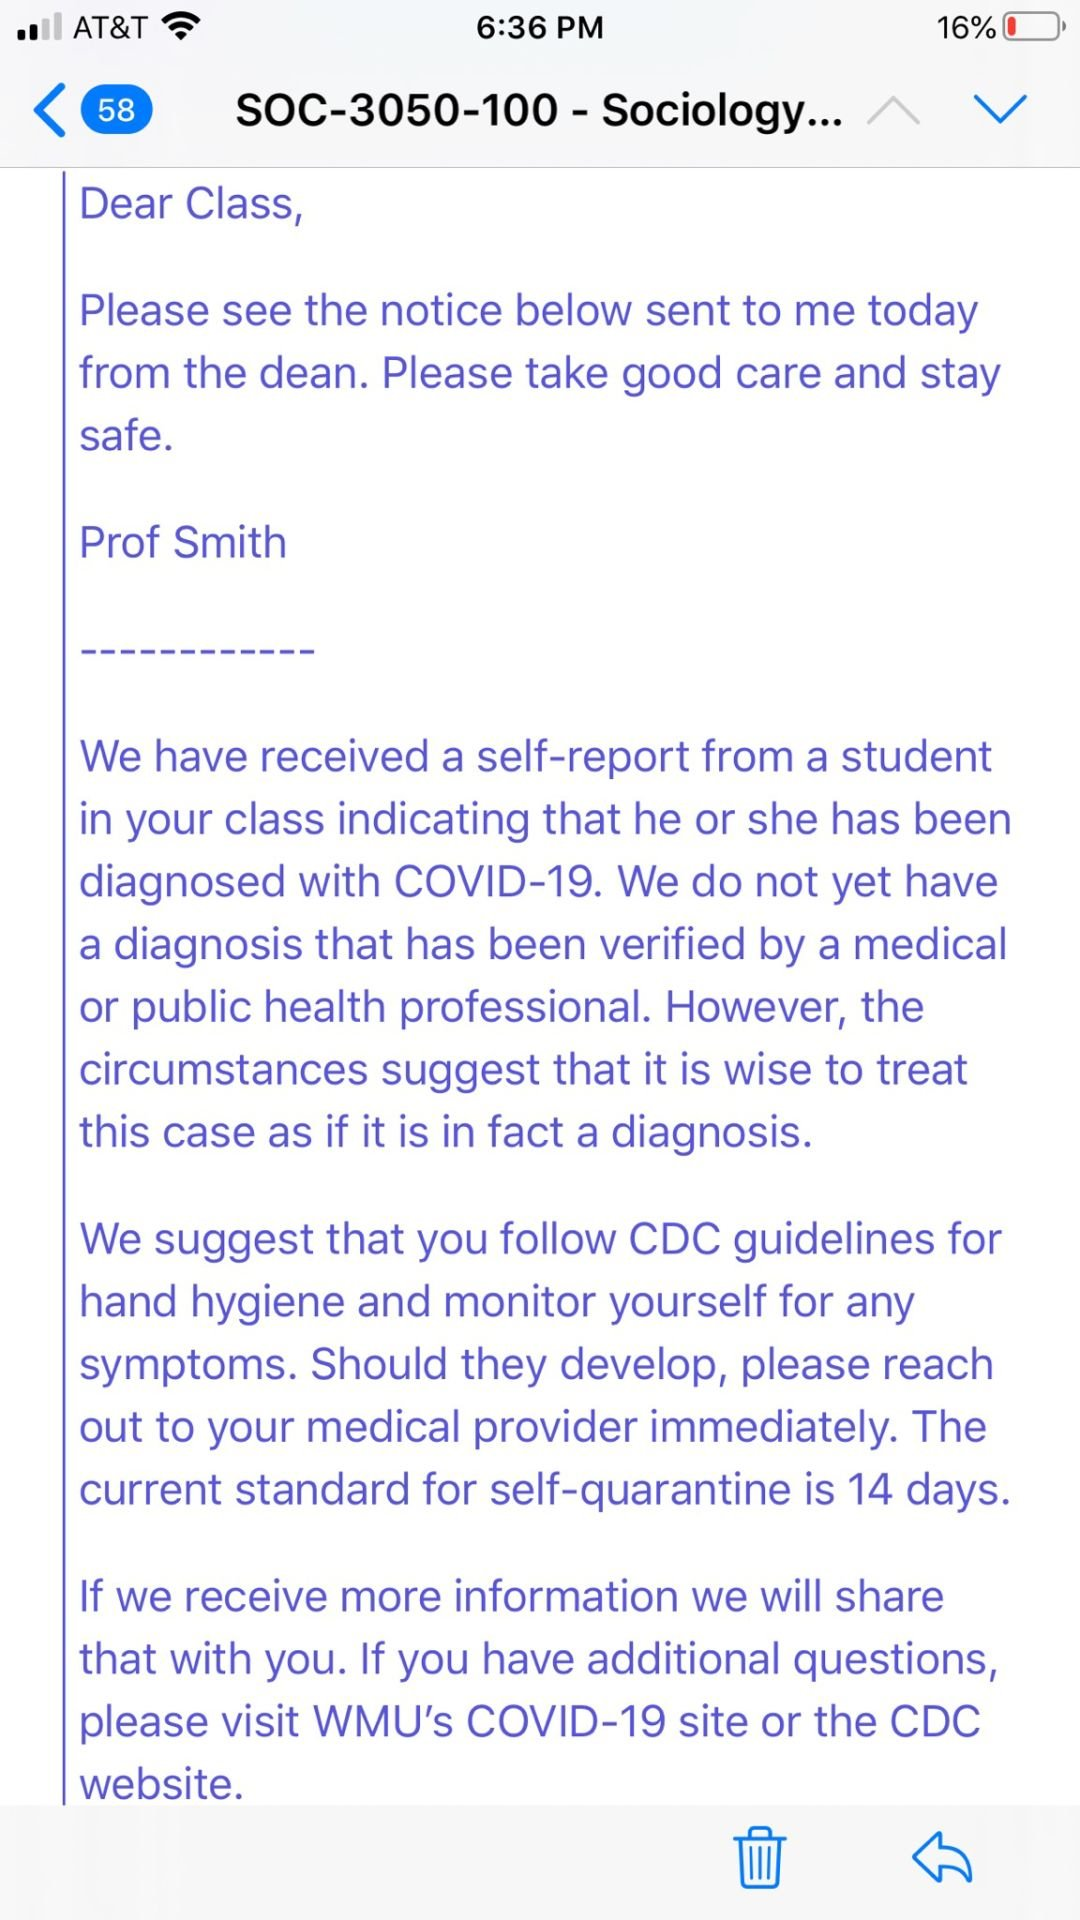 Email sent to students in sociology course with self-reporting COVID-19 victim